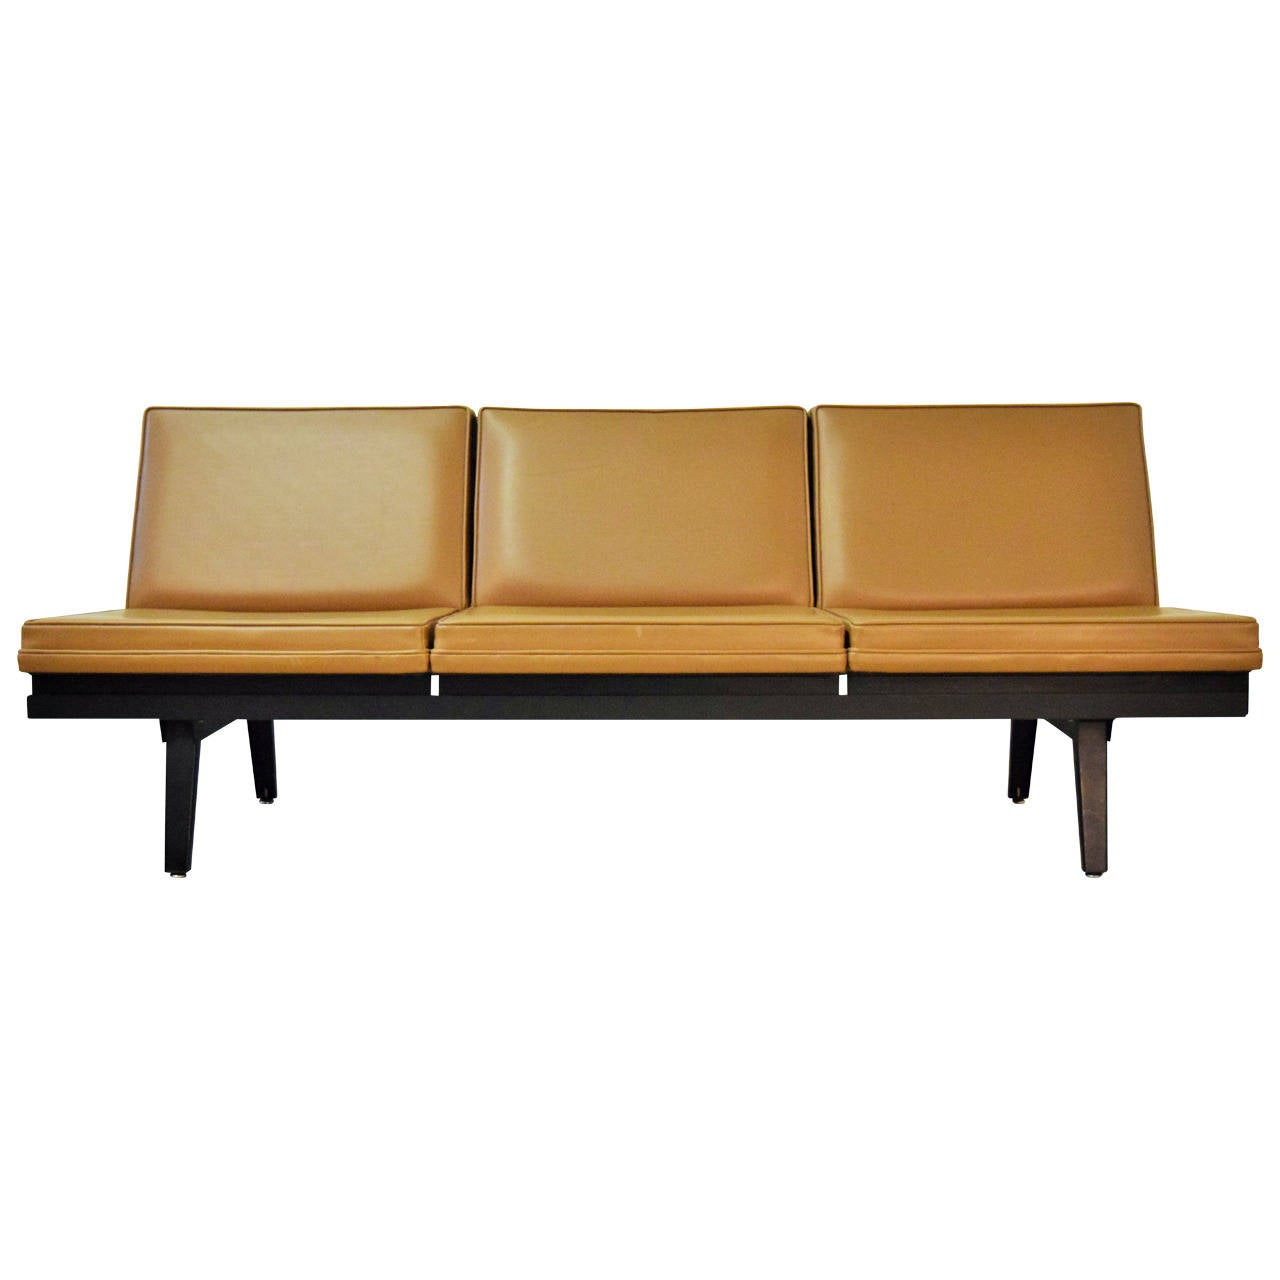 lobby sofa crossword cost to recover chesterfield george nelson steel frame at 1stdibs